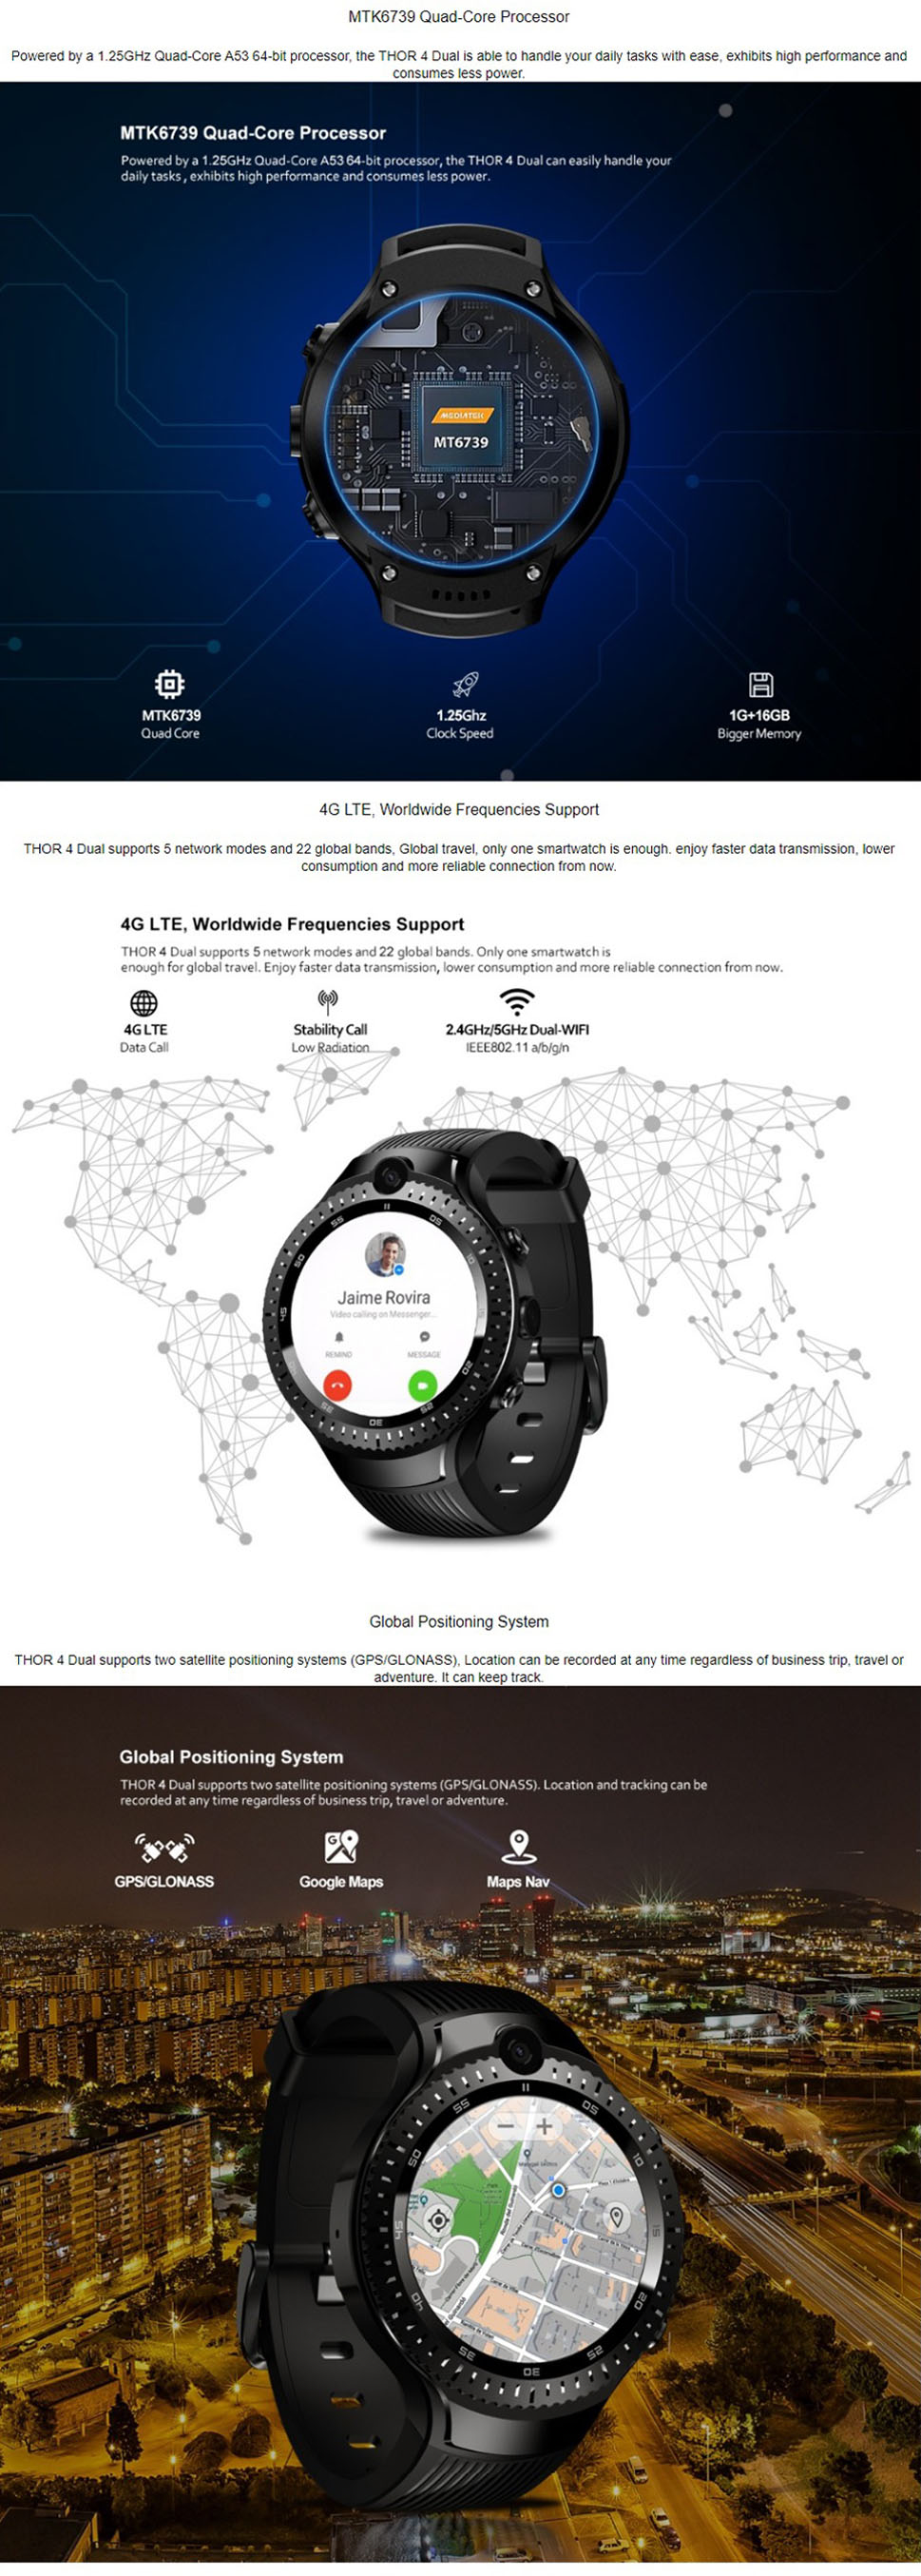 4G Smart Watch 5 0MP+5 0MP Dual Camera Android 1 4quot AOMLED